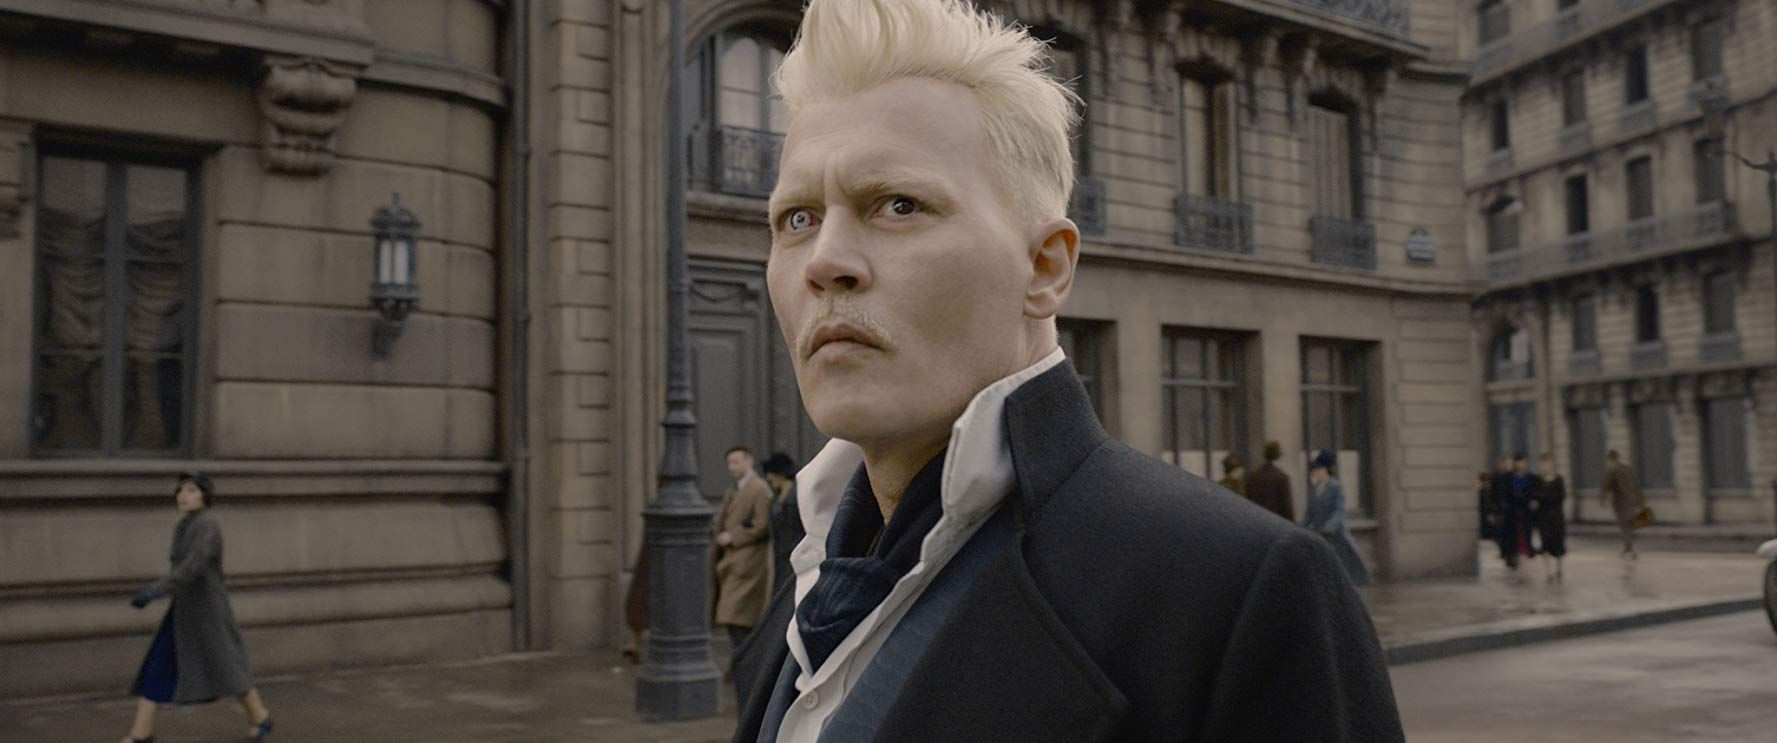 fantastic-beasts-crimes-of-grindelwald-johnny-depp